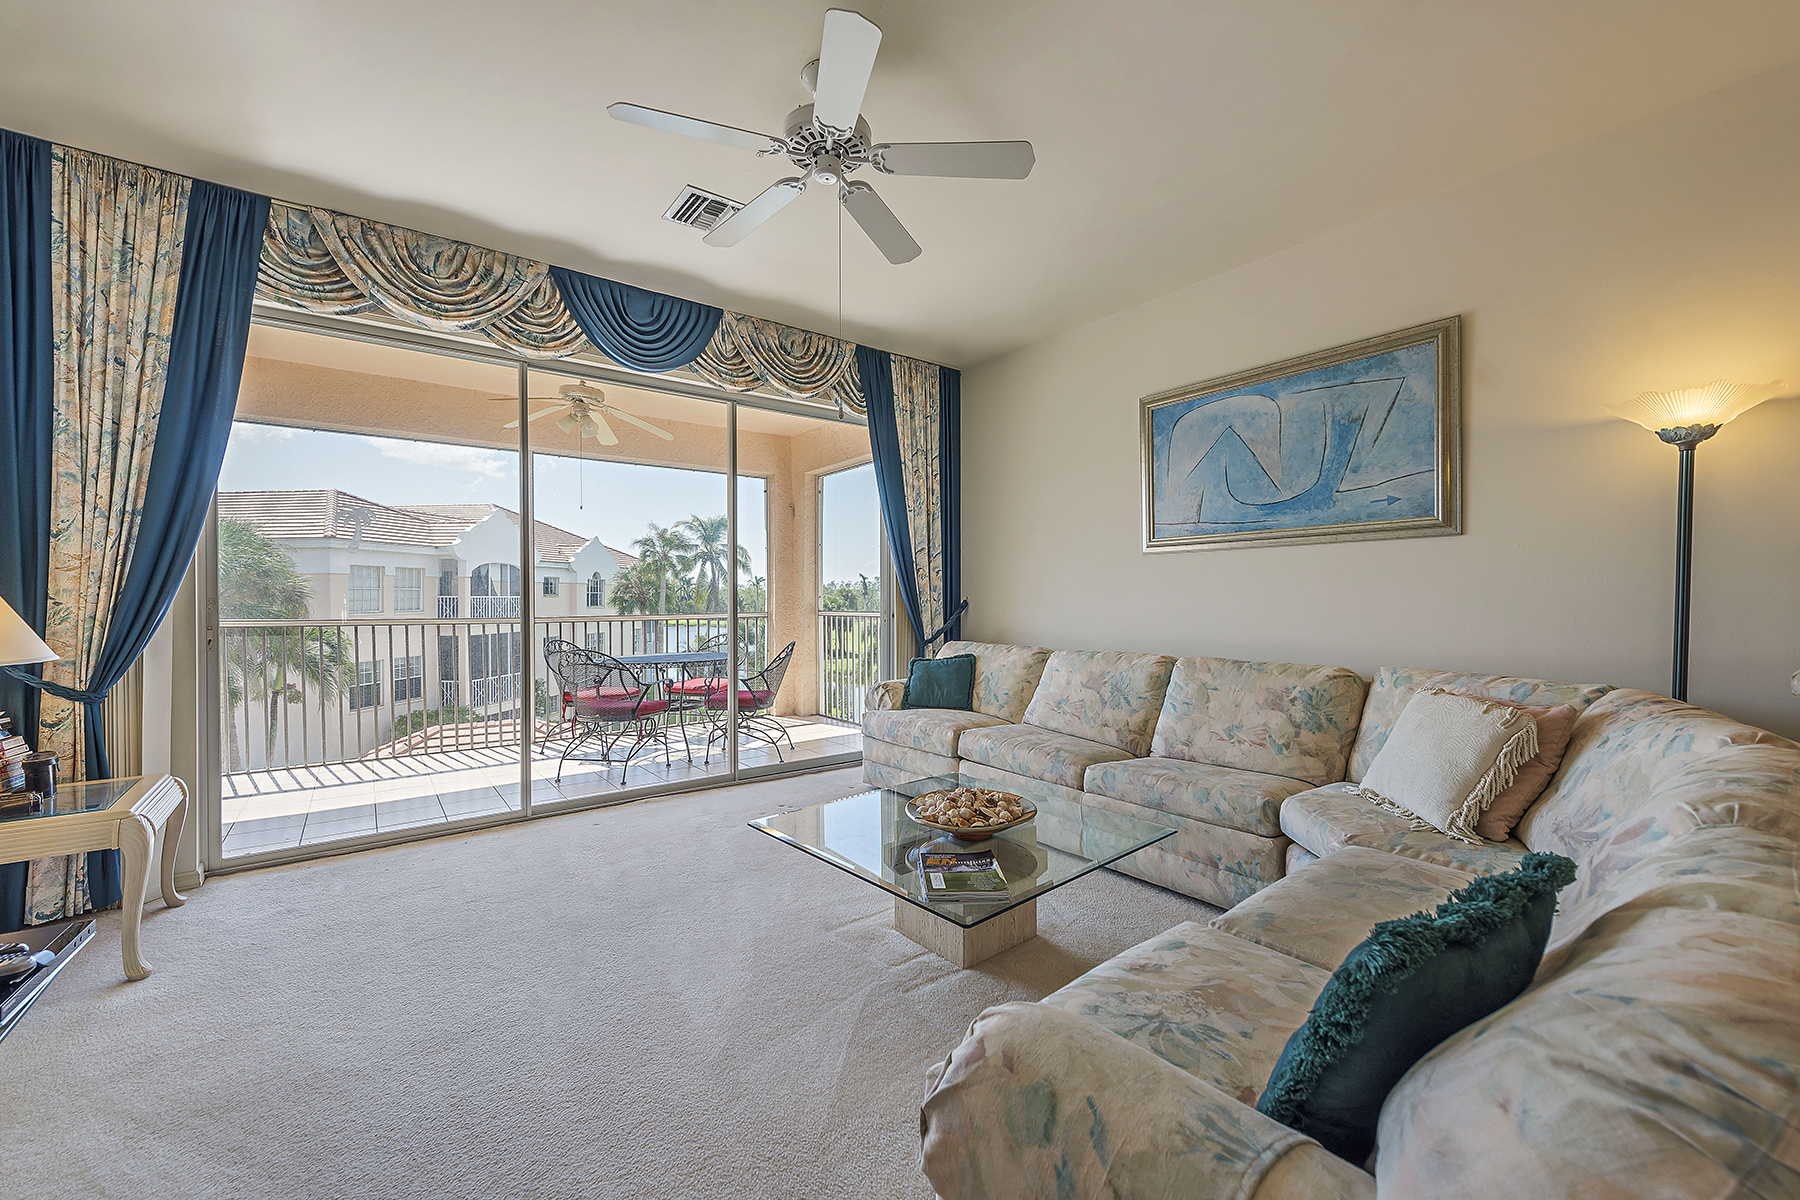 Condominium for Rent at WINDSTAR - COMPASS POINT 3554 Haldeman Creek Dr 2-131, Naples, Florida, 34112 United States